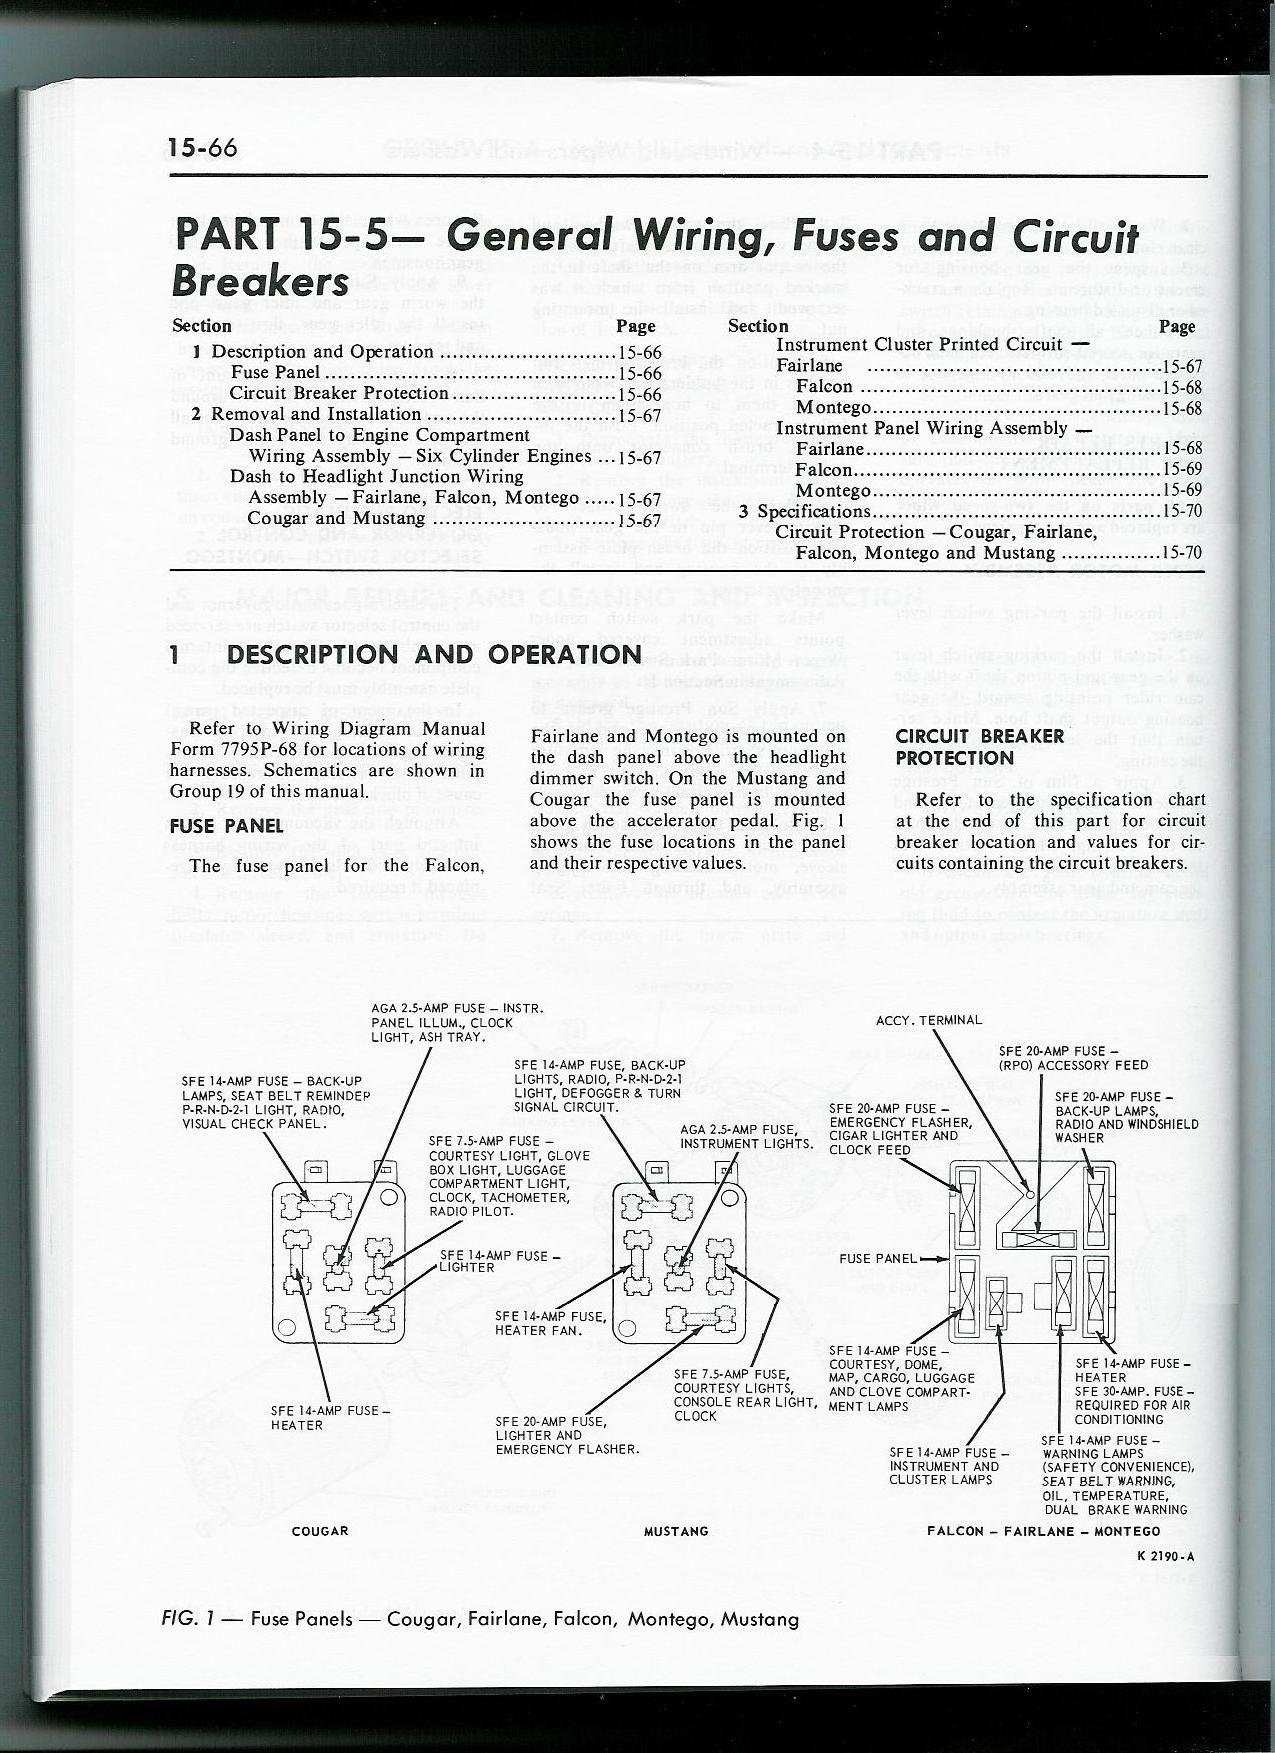 68 cougar fuse box on technical diagrams 1967 ford mustang fuse box diagram